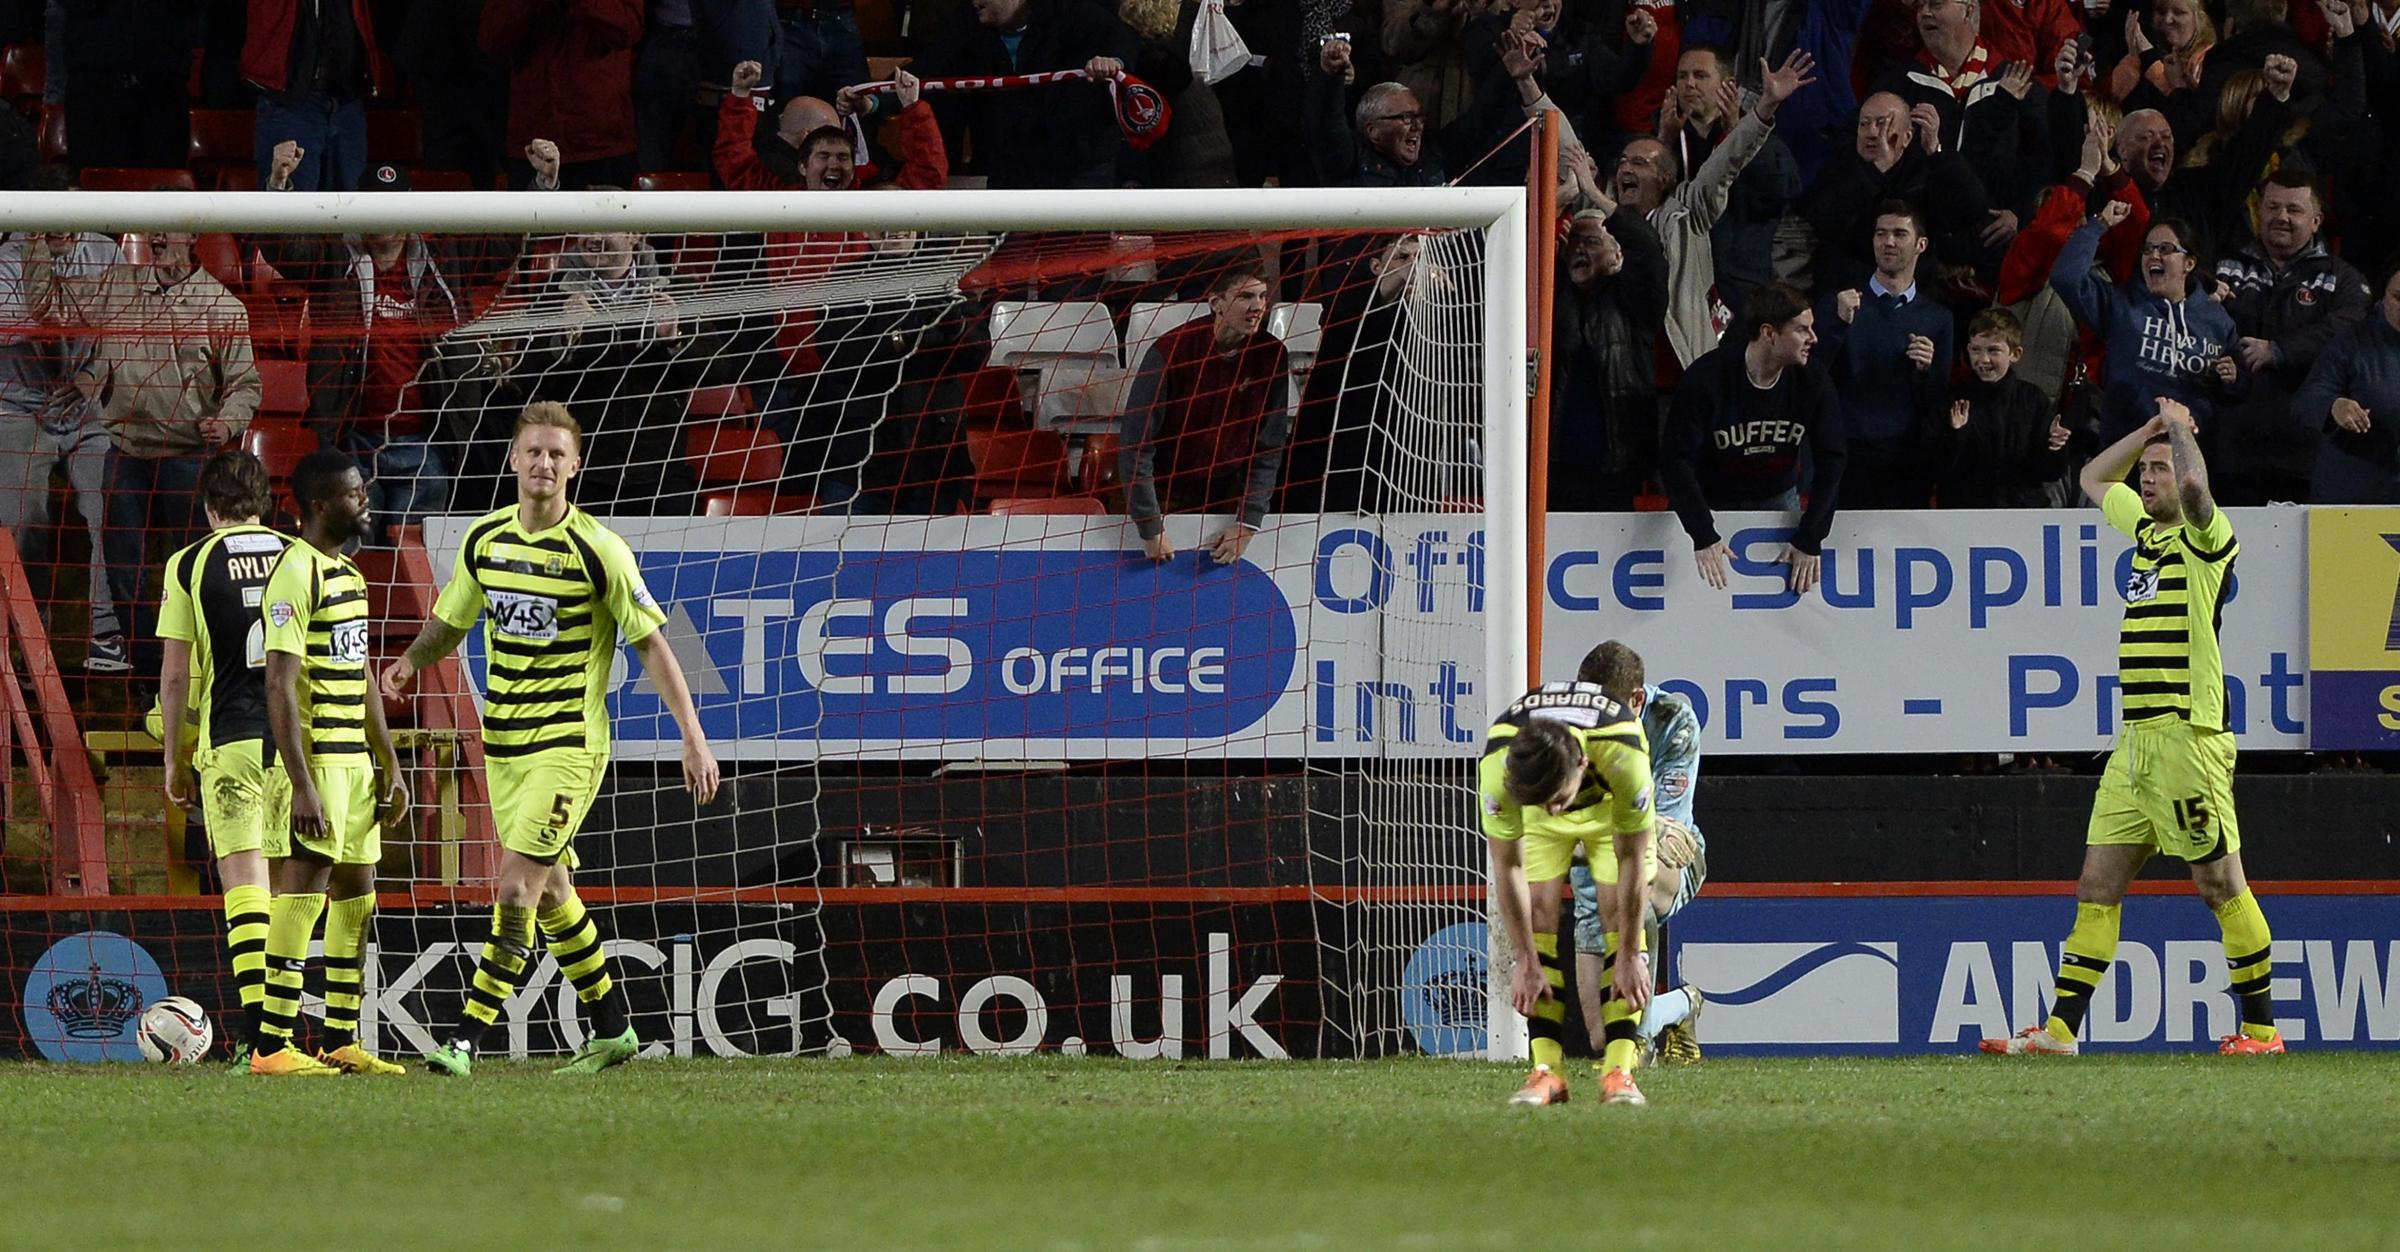 Sky Bet Championship: Charlton Athletic 3, Yeovil Town 2